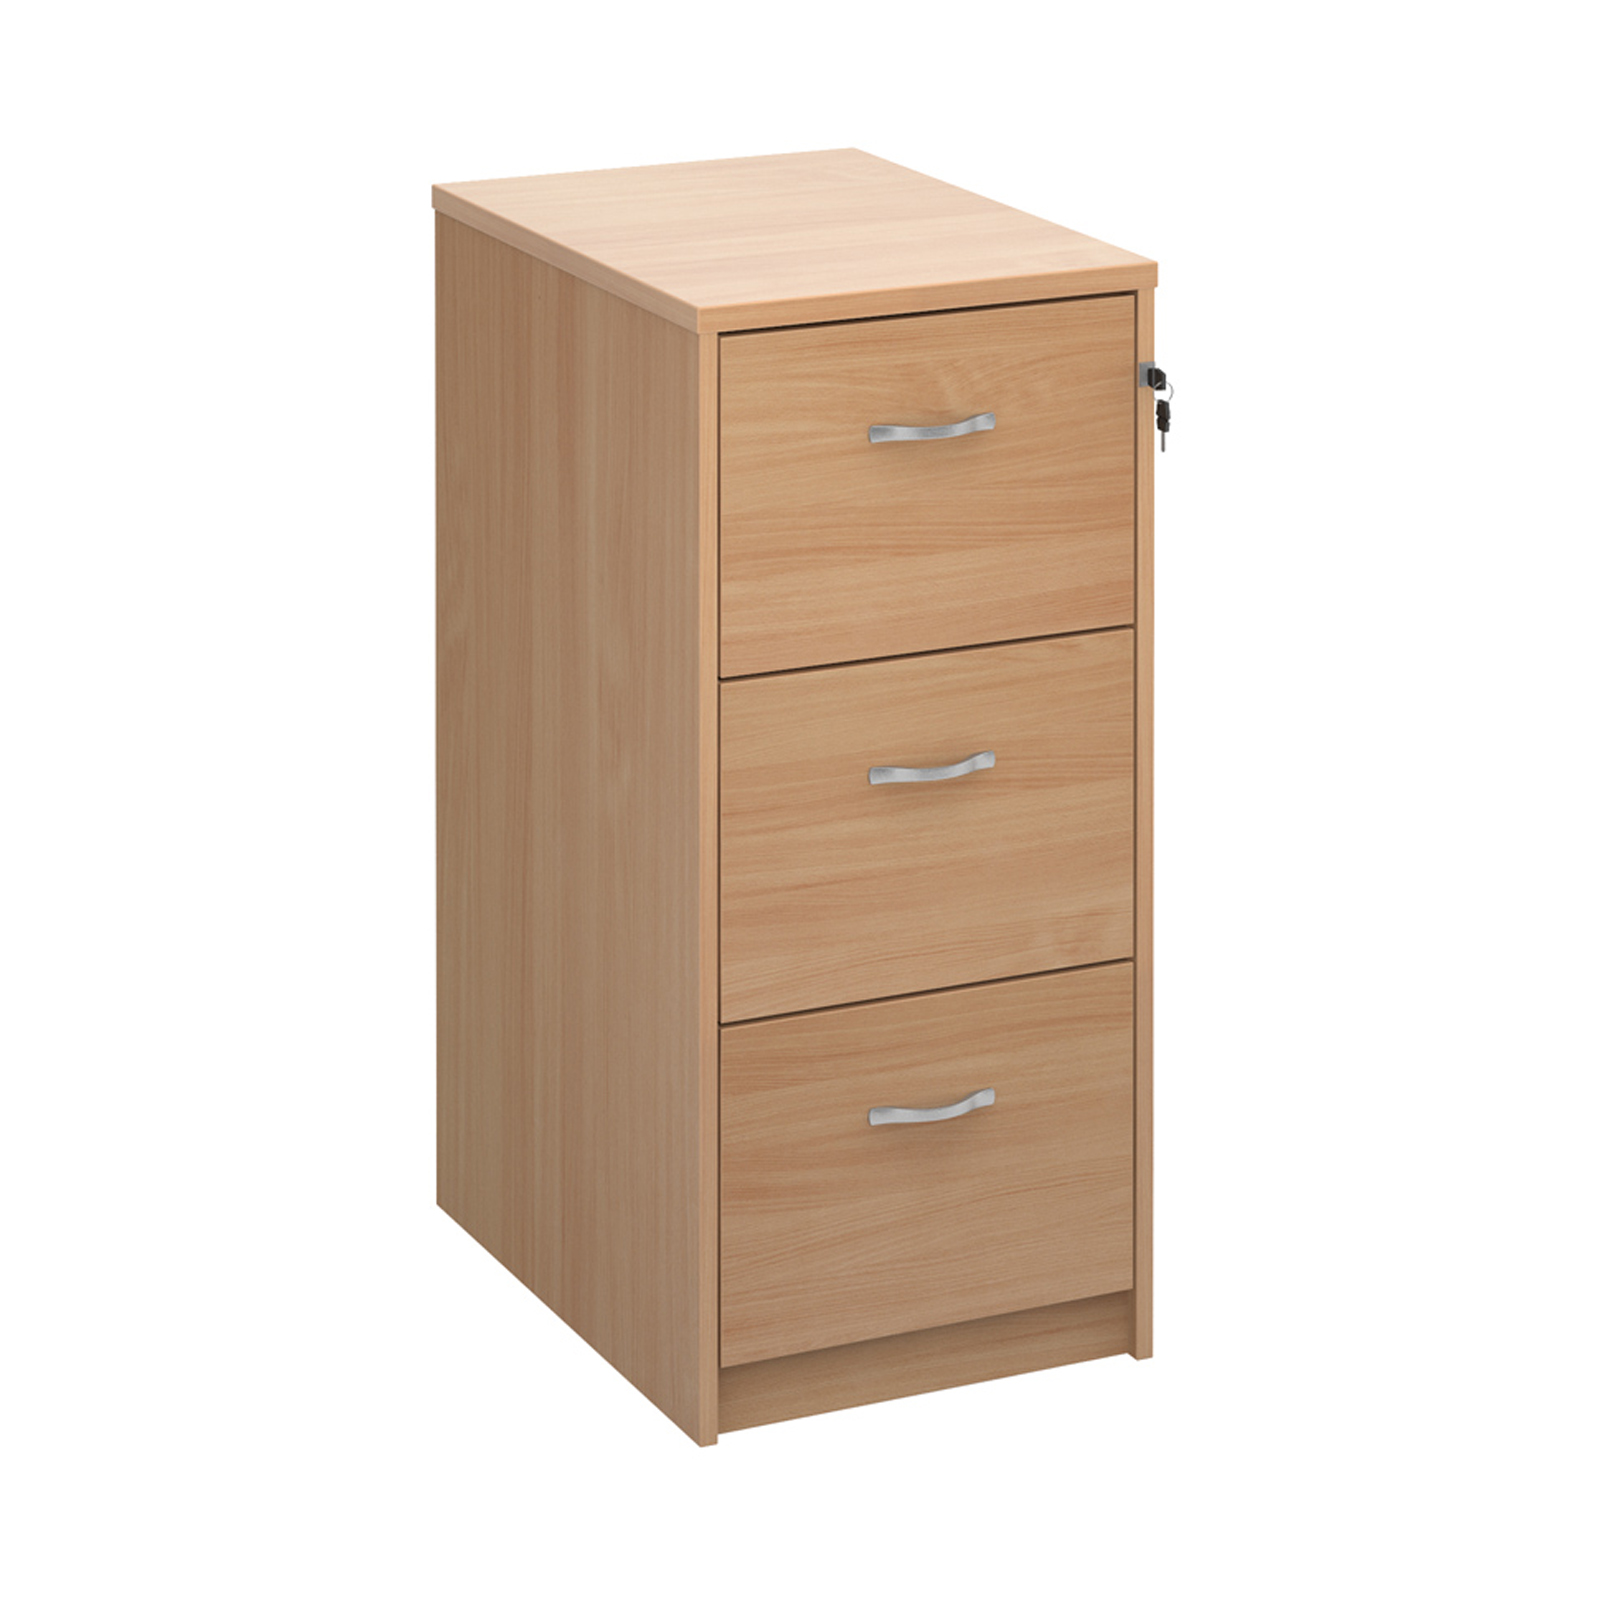 Wood Wooden 3 drawer filing cabinet with silver handles 1045mm high - beech